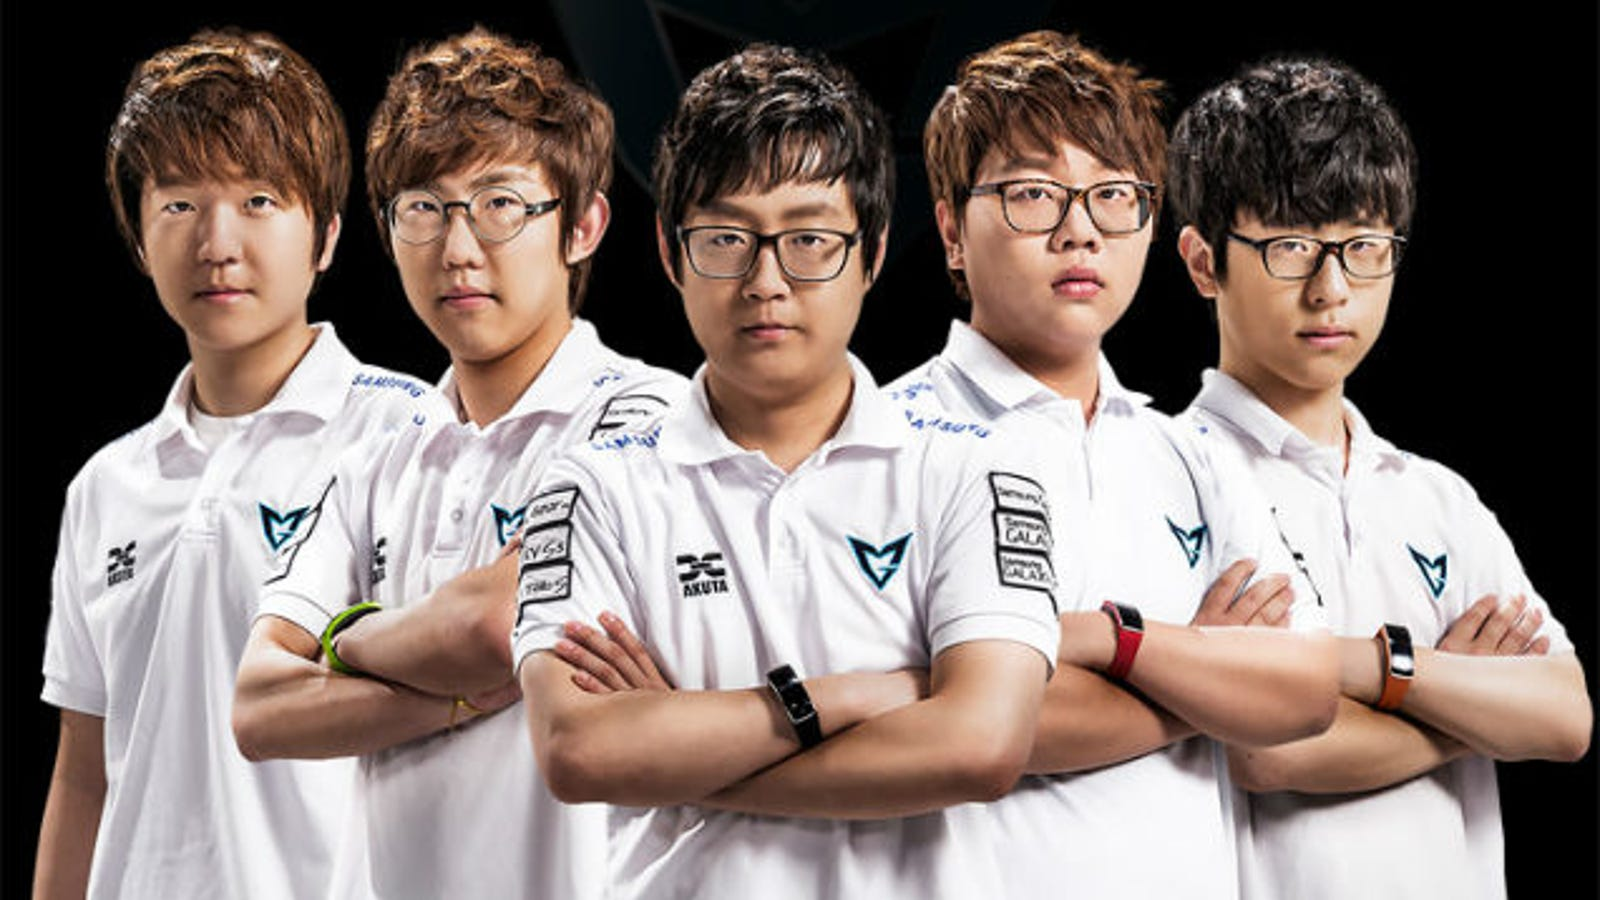 League Of Legends Gets Skins Modeled After Championship Players